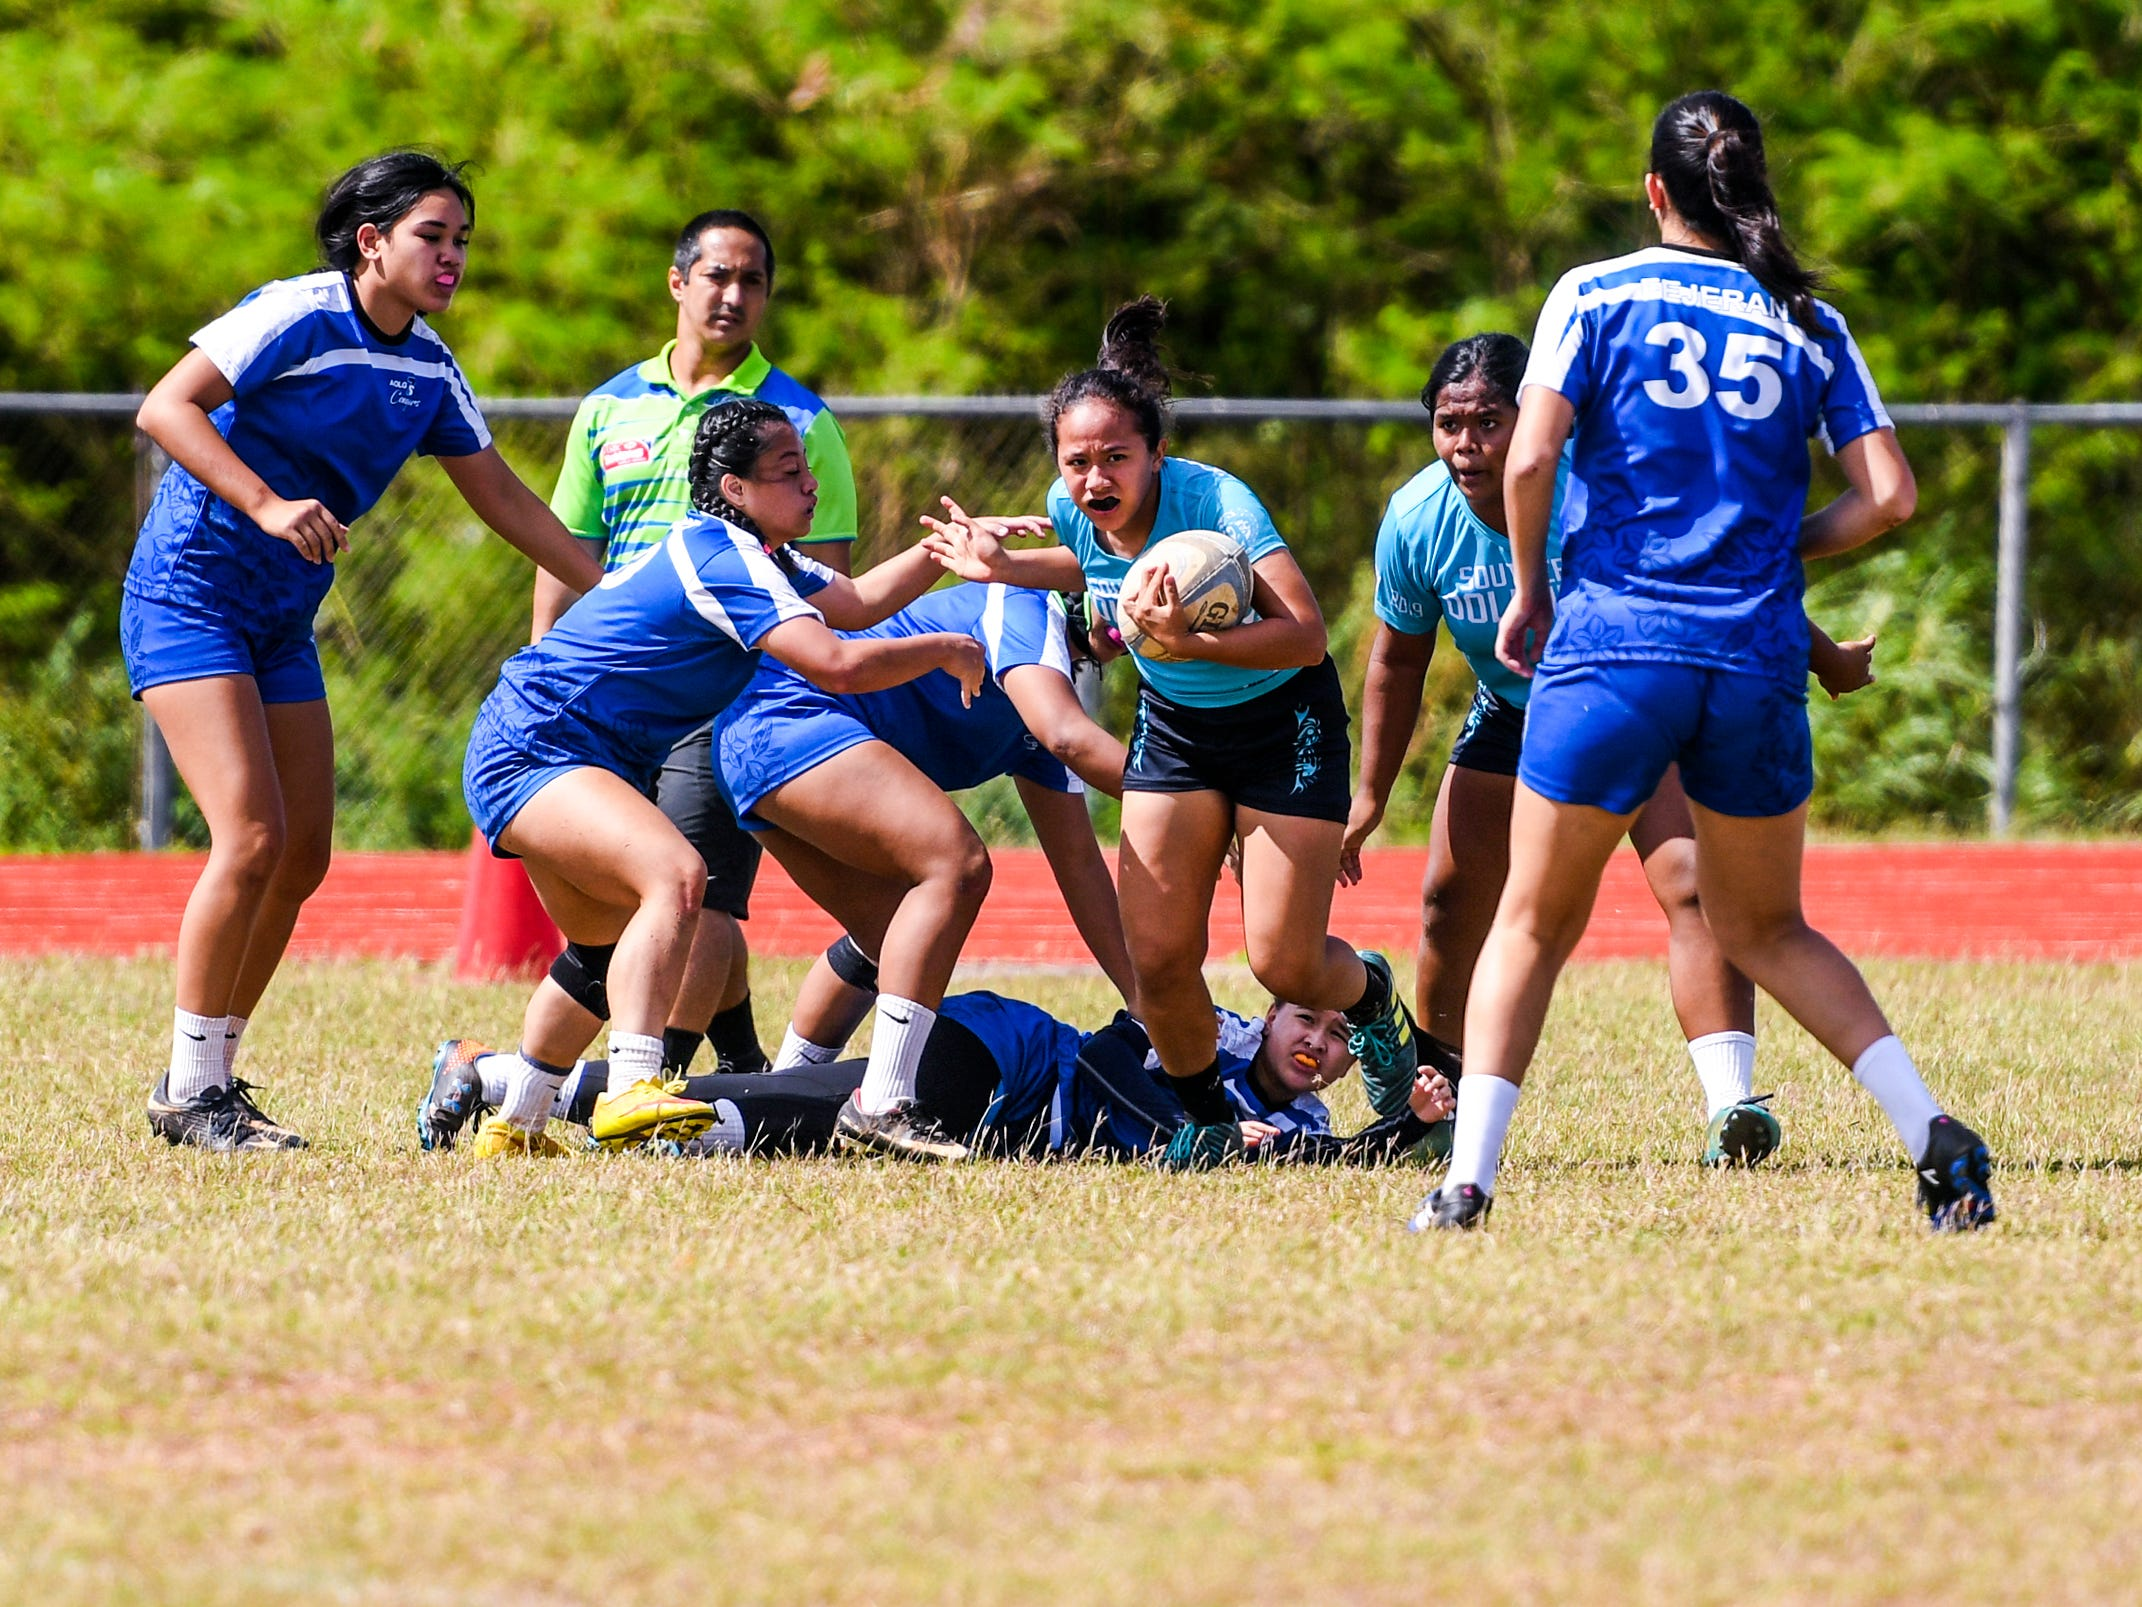 The Academy of Our Lady Guam Cougars competes against the Southern High School Dolphins during their Girls Varsity IIAAG/GRFU rugby matchup on Ramsey Field at the John F. Kennedy High School in Tamuning on Saturday, March 9, 2019. In the end, the Dolphins swam away with the victory with a final score of 24-5.